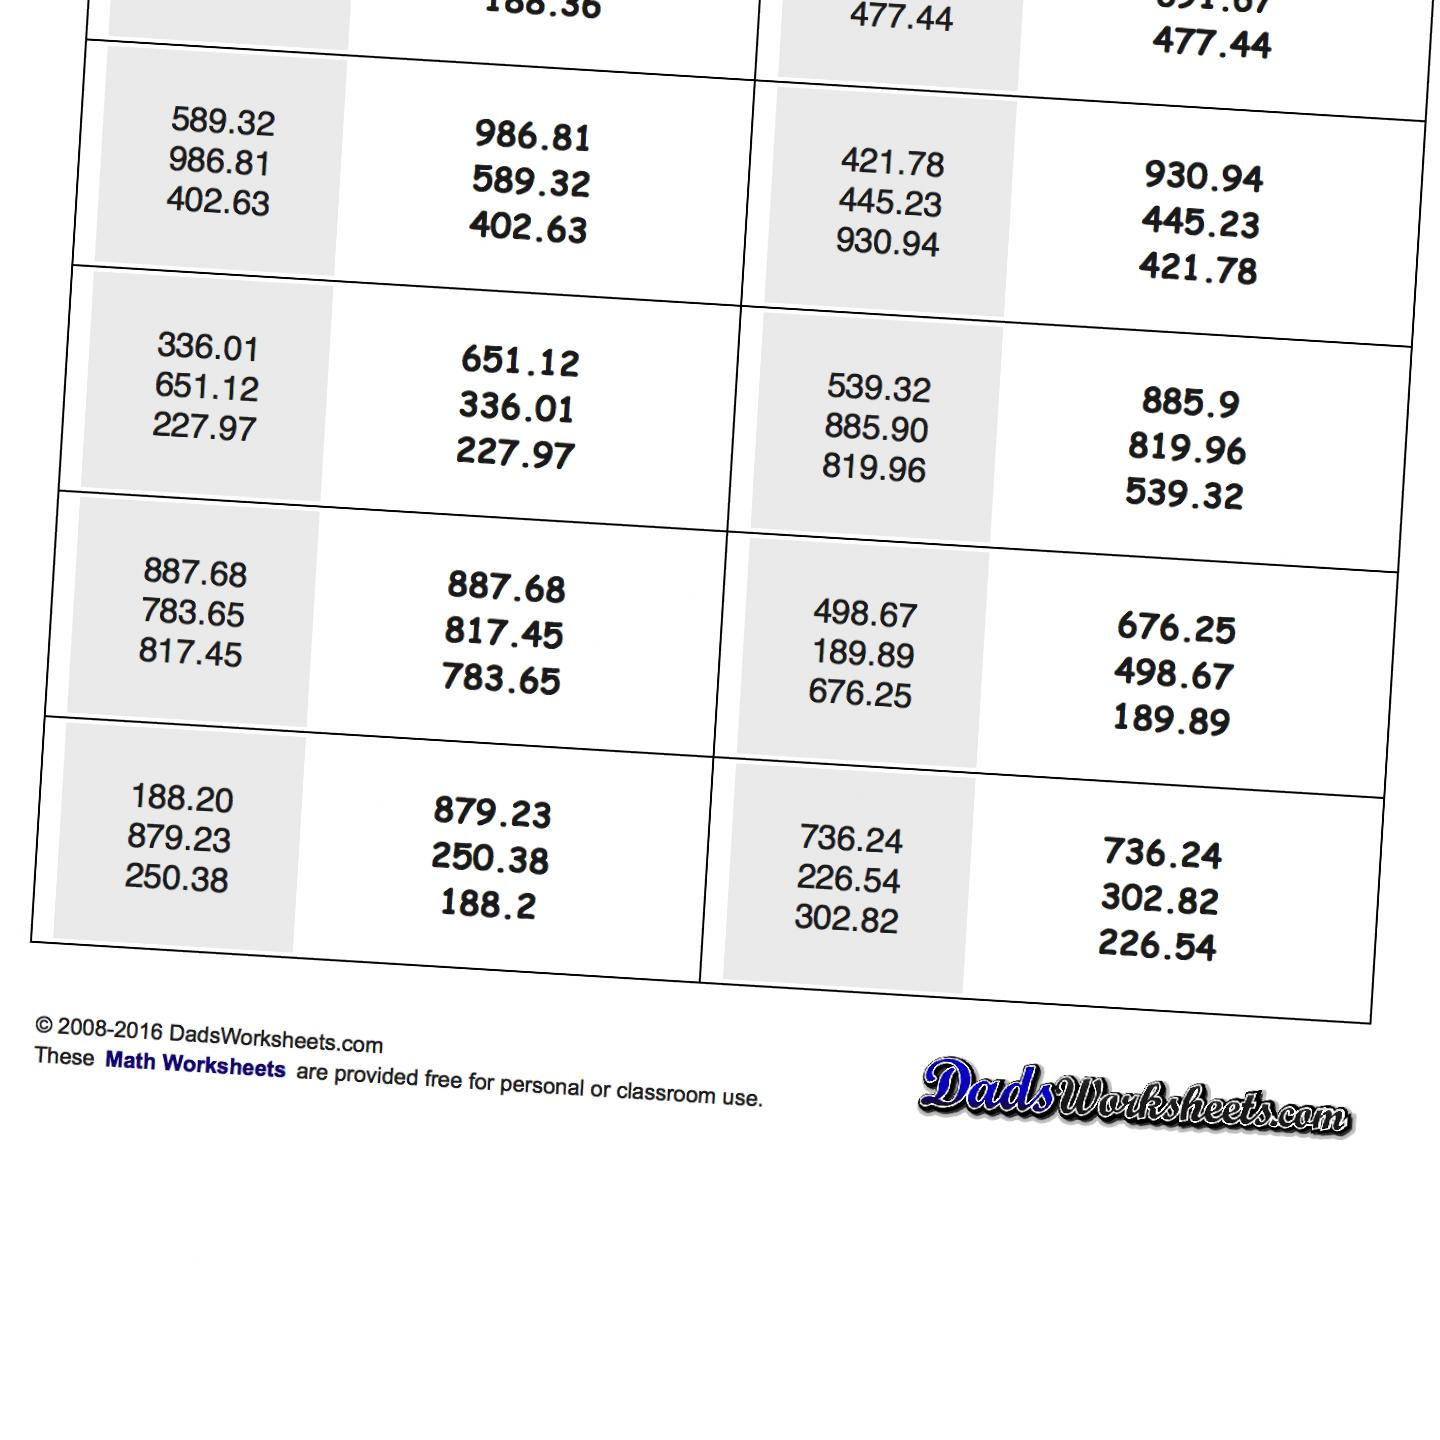 Math Worksheets Least To Greatest free printable math worksheets – Ordering Fractions and Decimals from Least to Greatest Worksheet